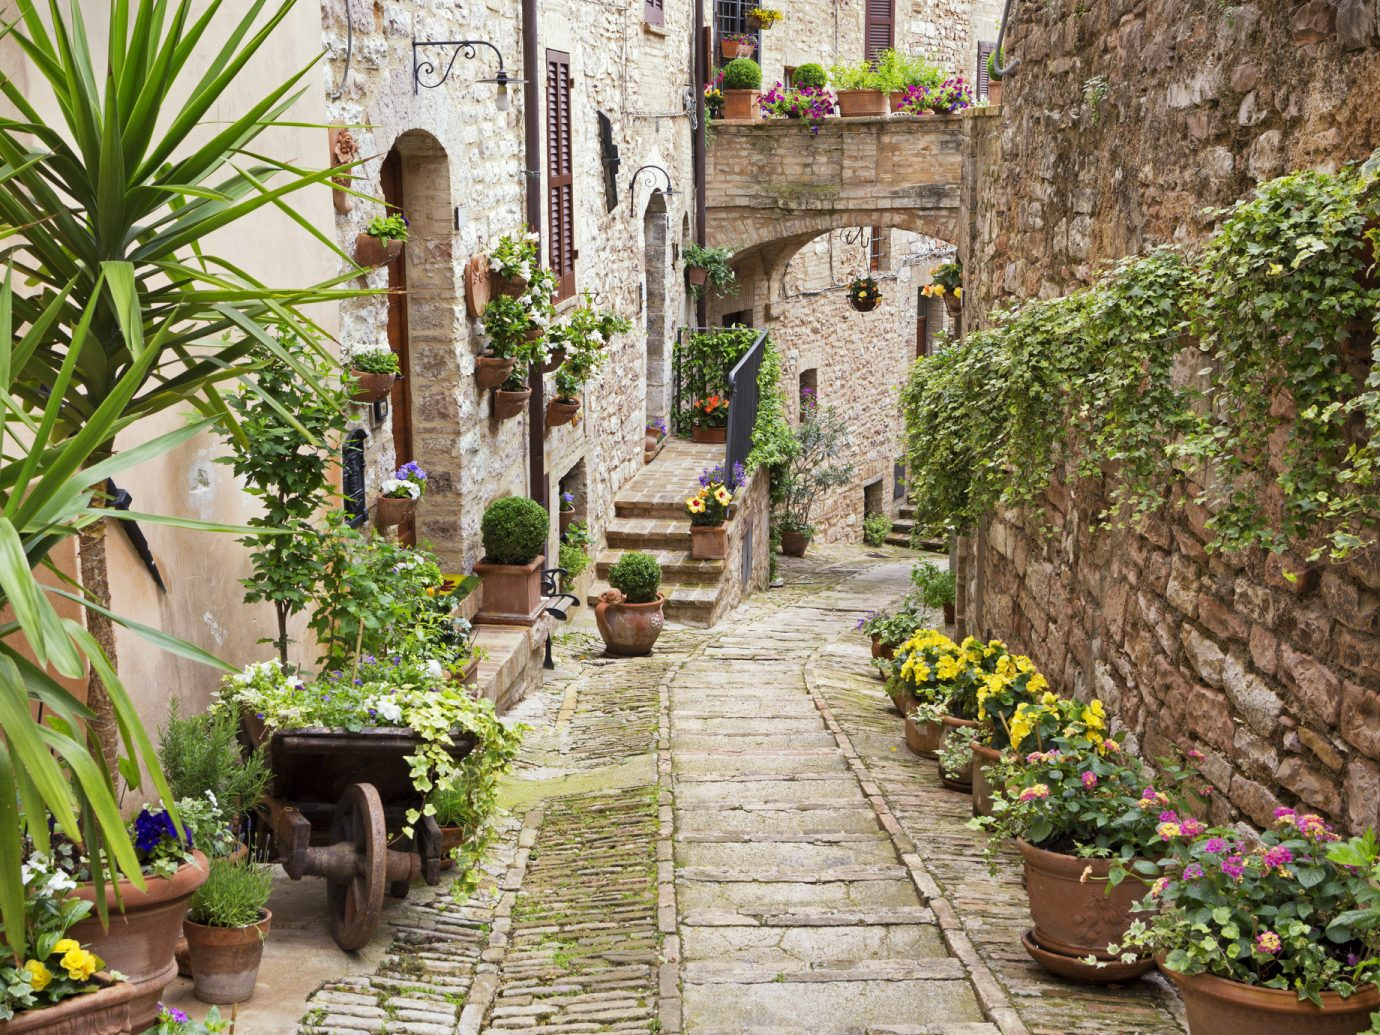 Trip Ideas plant outdoor Garden flora botany Courtyard wall flower stone Village estate yard way sidewalk surrounded